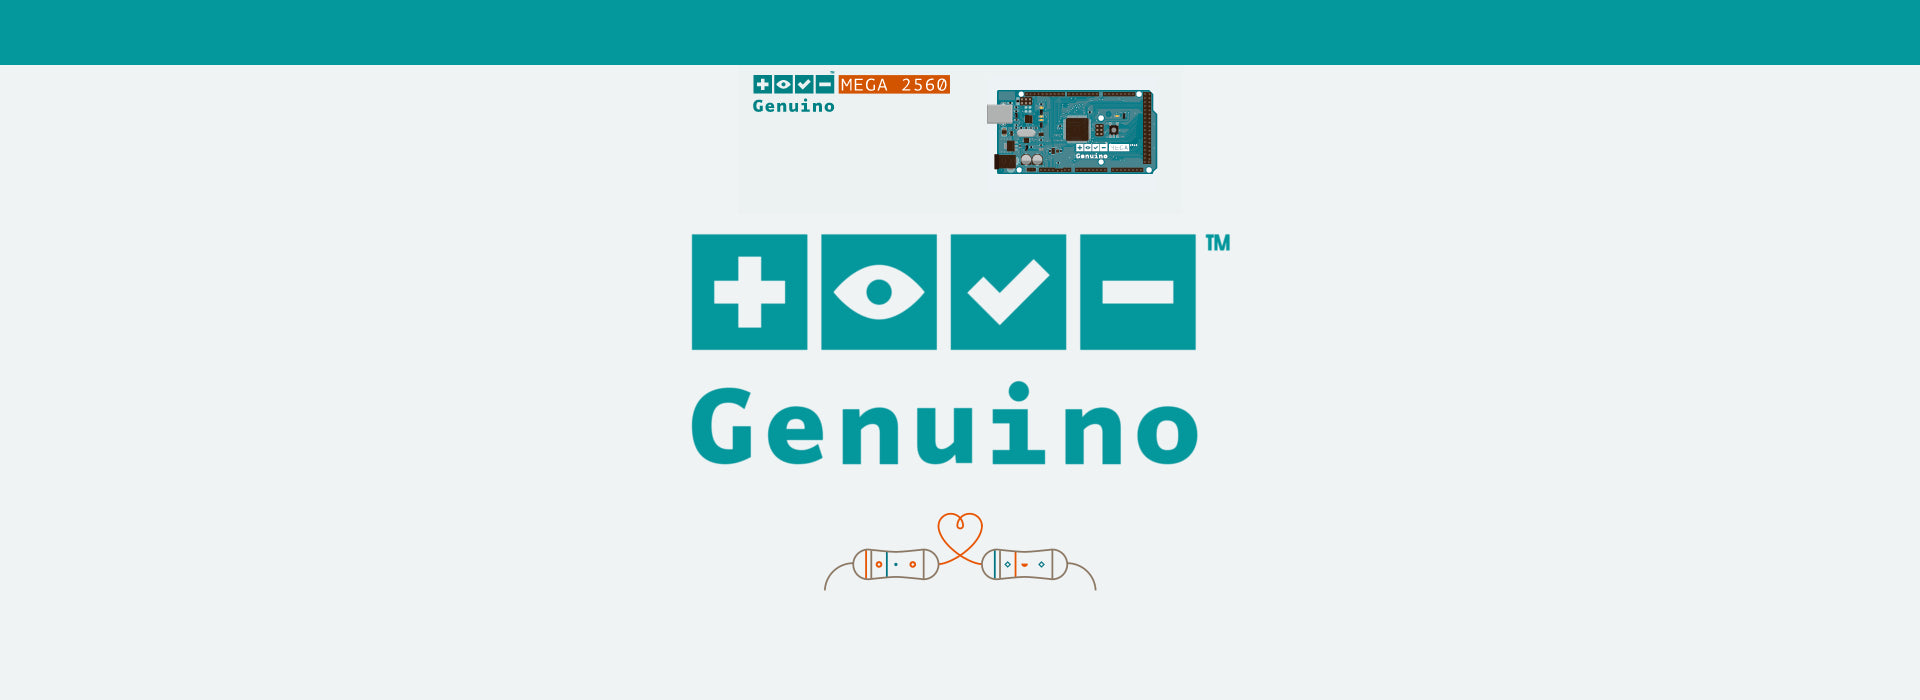 Genuino Mega 2560 Rev3